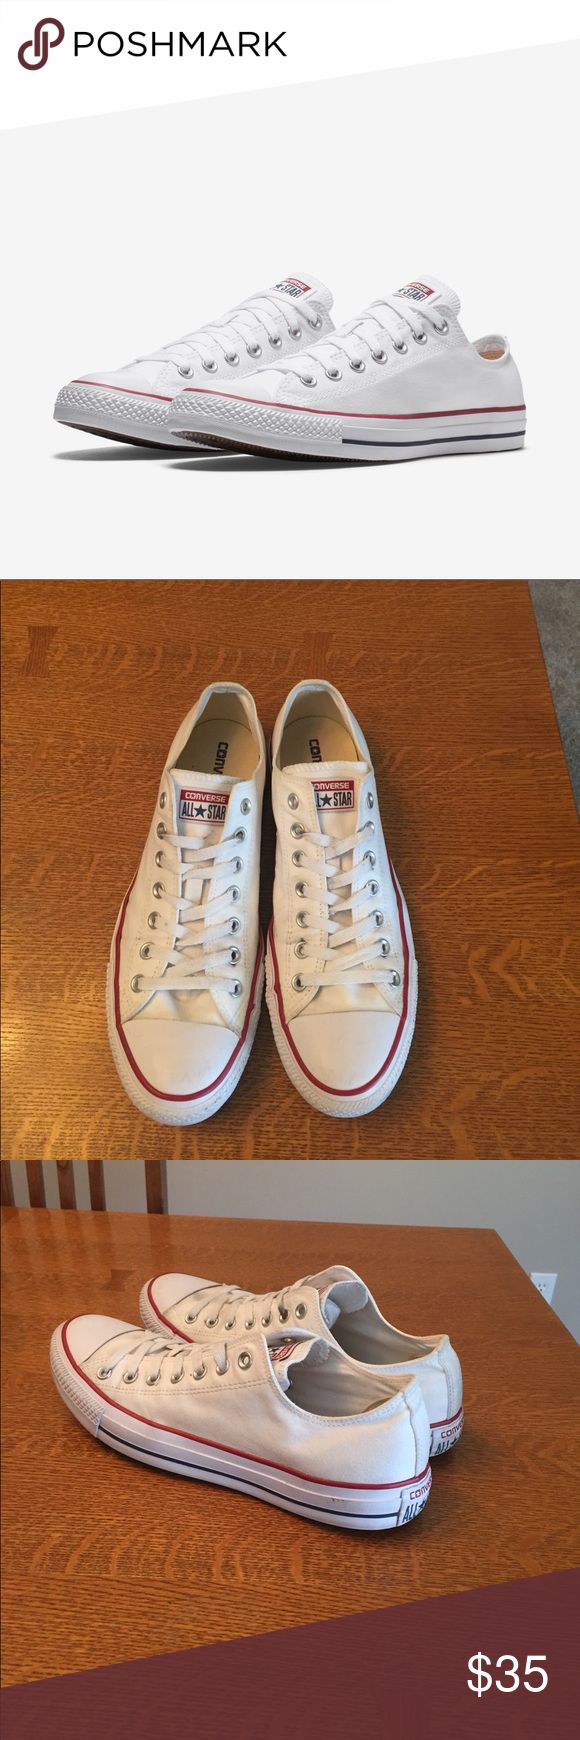 White converse Chuck Taylor All star Low White Chuck Taylor All Star Converse sneakers. Lightly worn with minimal dirt/scuffs on the exterior! Shoes in awesome condition as you can see! Converse Shoes Sneakers